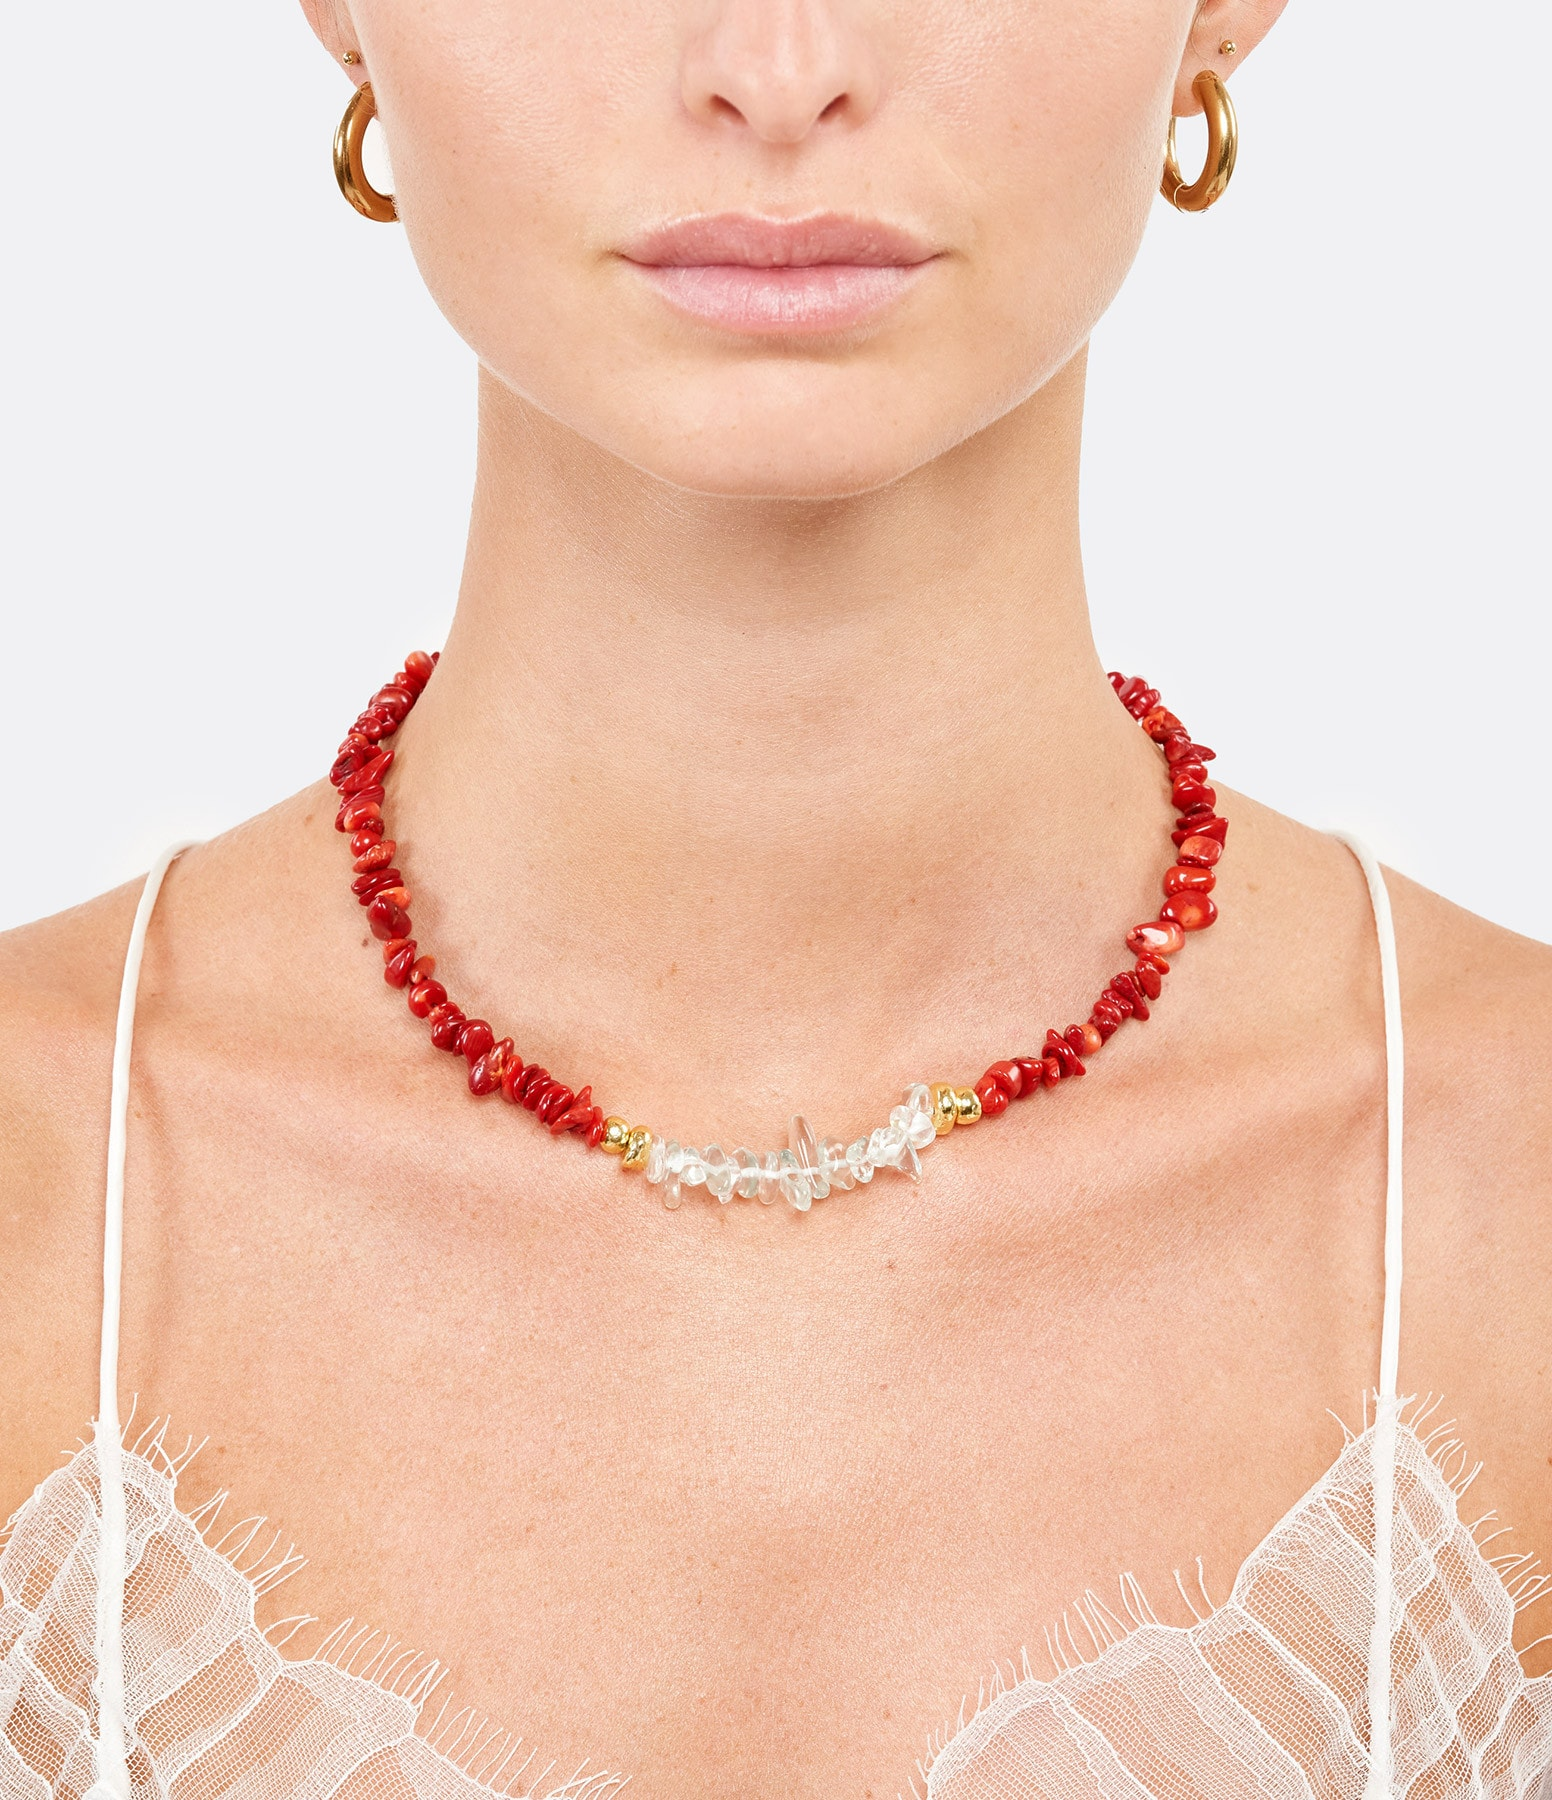 SHAKER JEWELS - Collier Pierres Rouges Plaqué Or